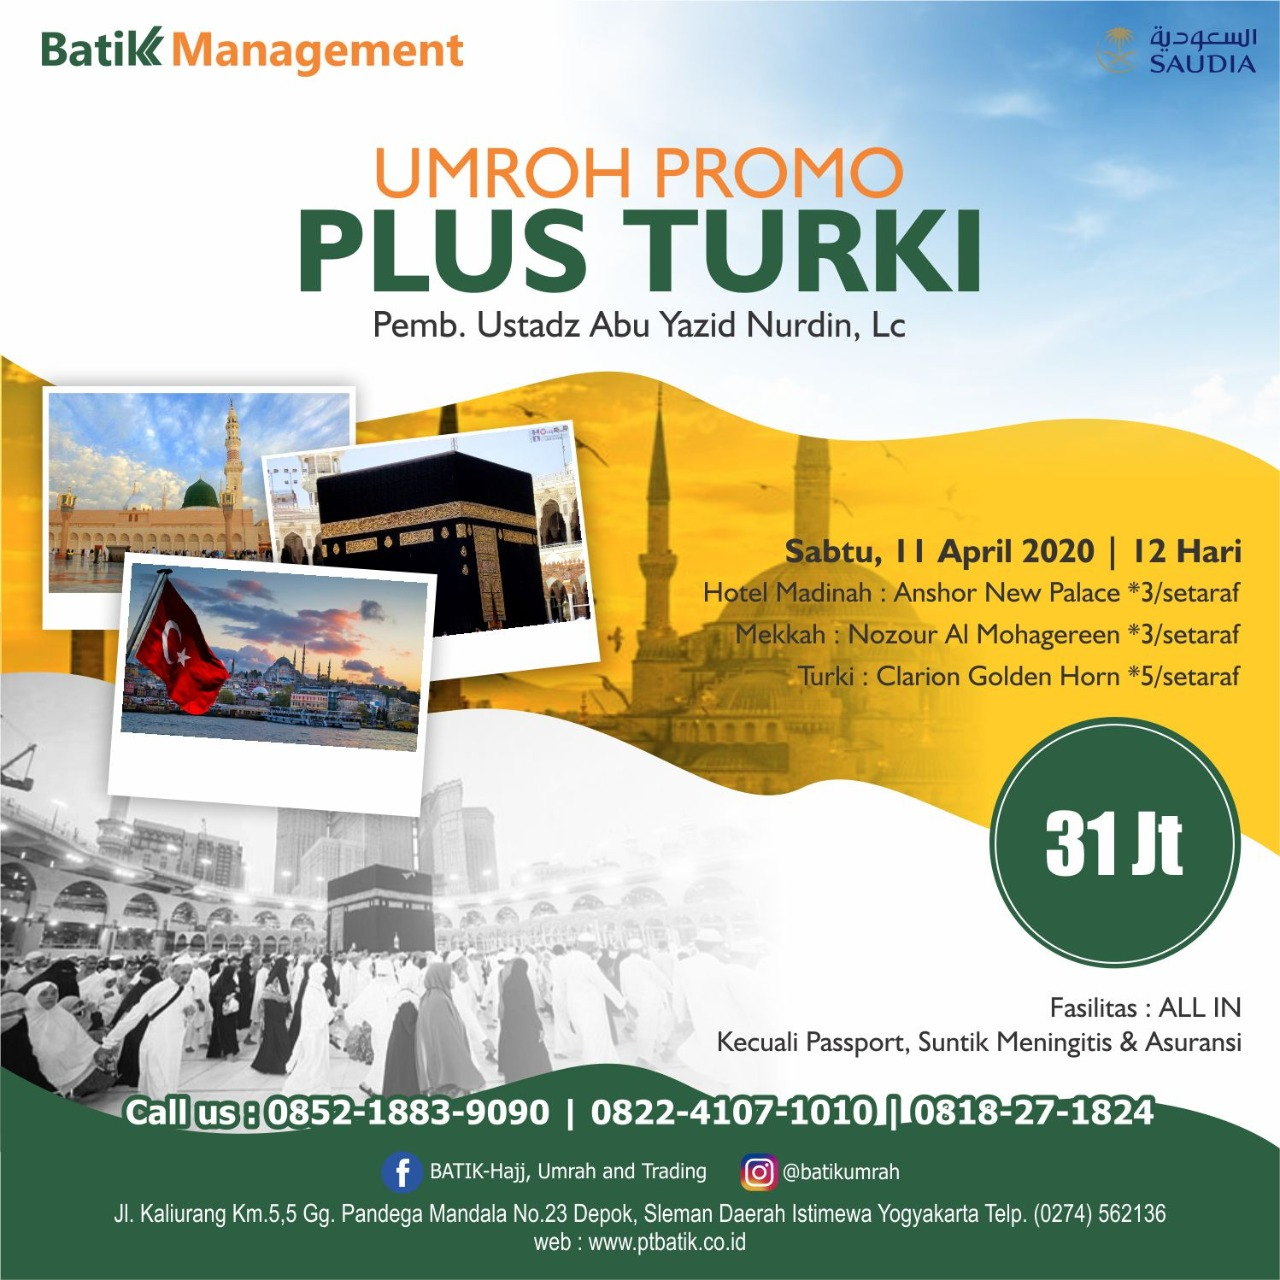 [PROMO] Umroh Promo 12 Hari PLUS Turki - 11 April 2020